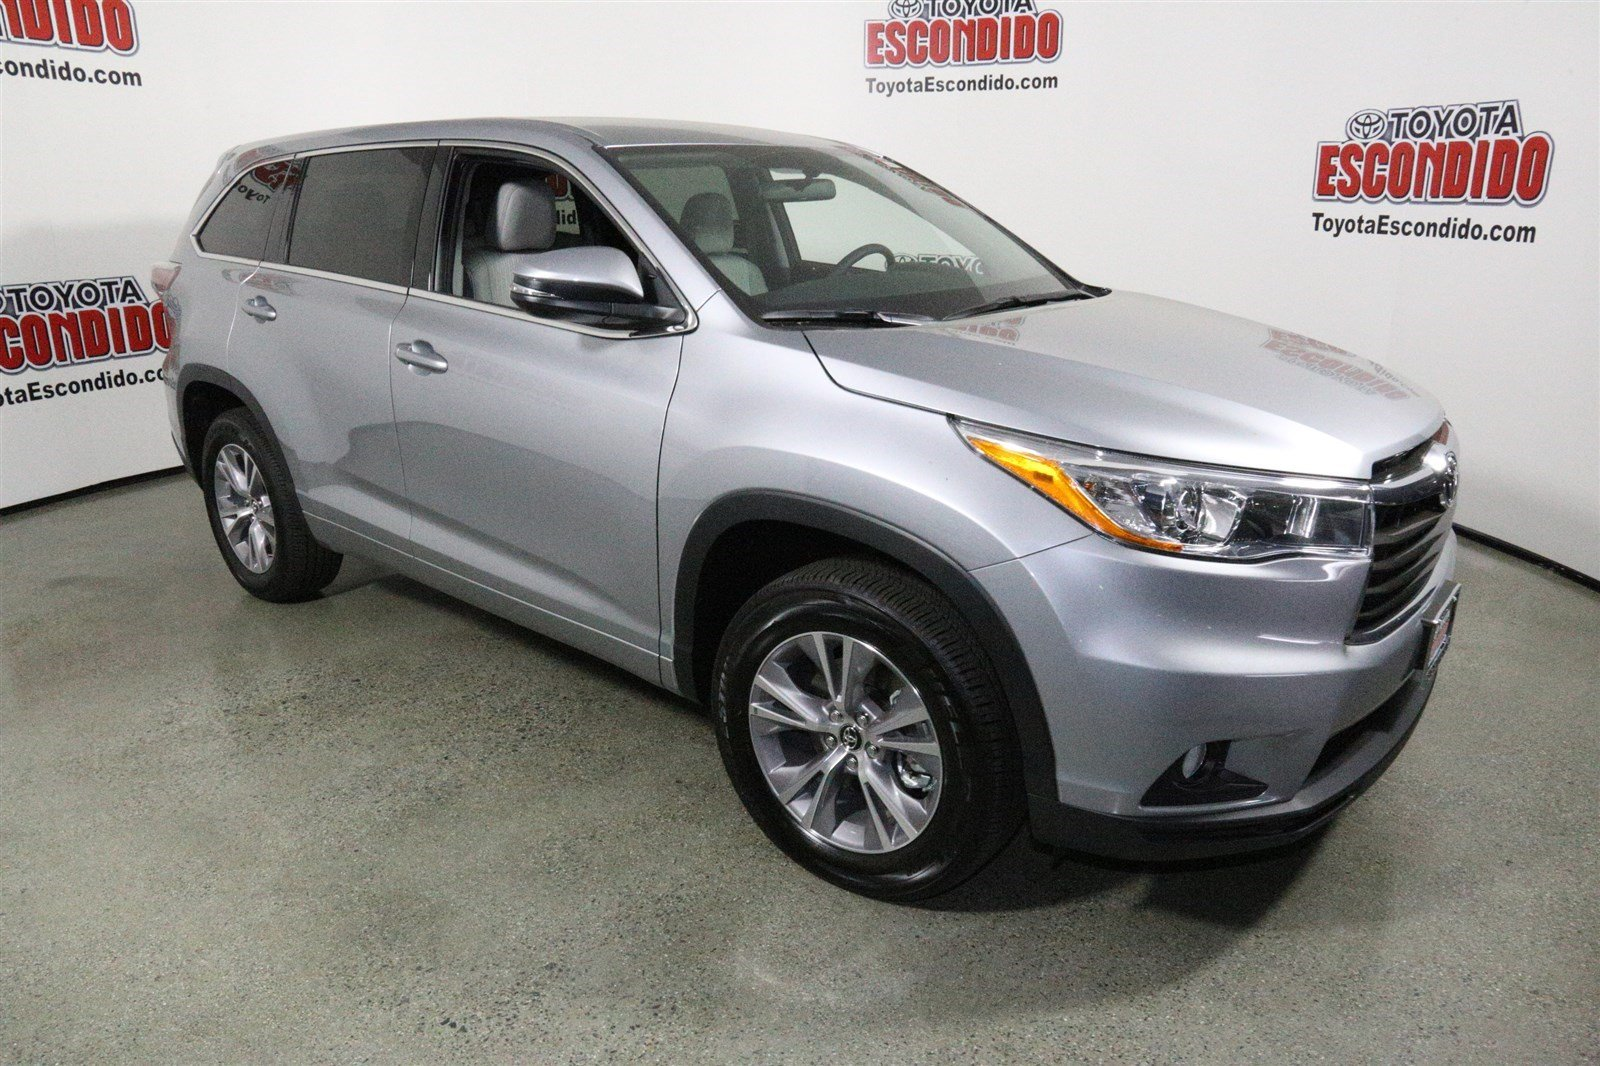 new 2016 toyota highlander le plus sport utility in escondido 1013753 toyota of escondido. Black Bedroom Furniture Sets. Home Design Ideas